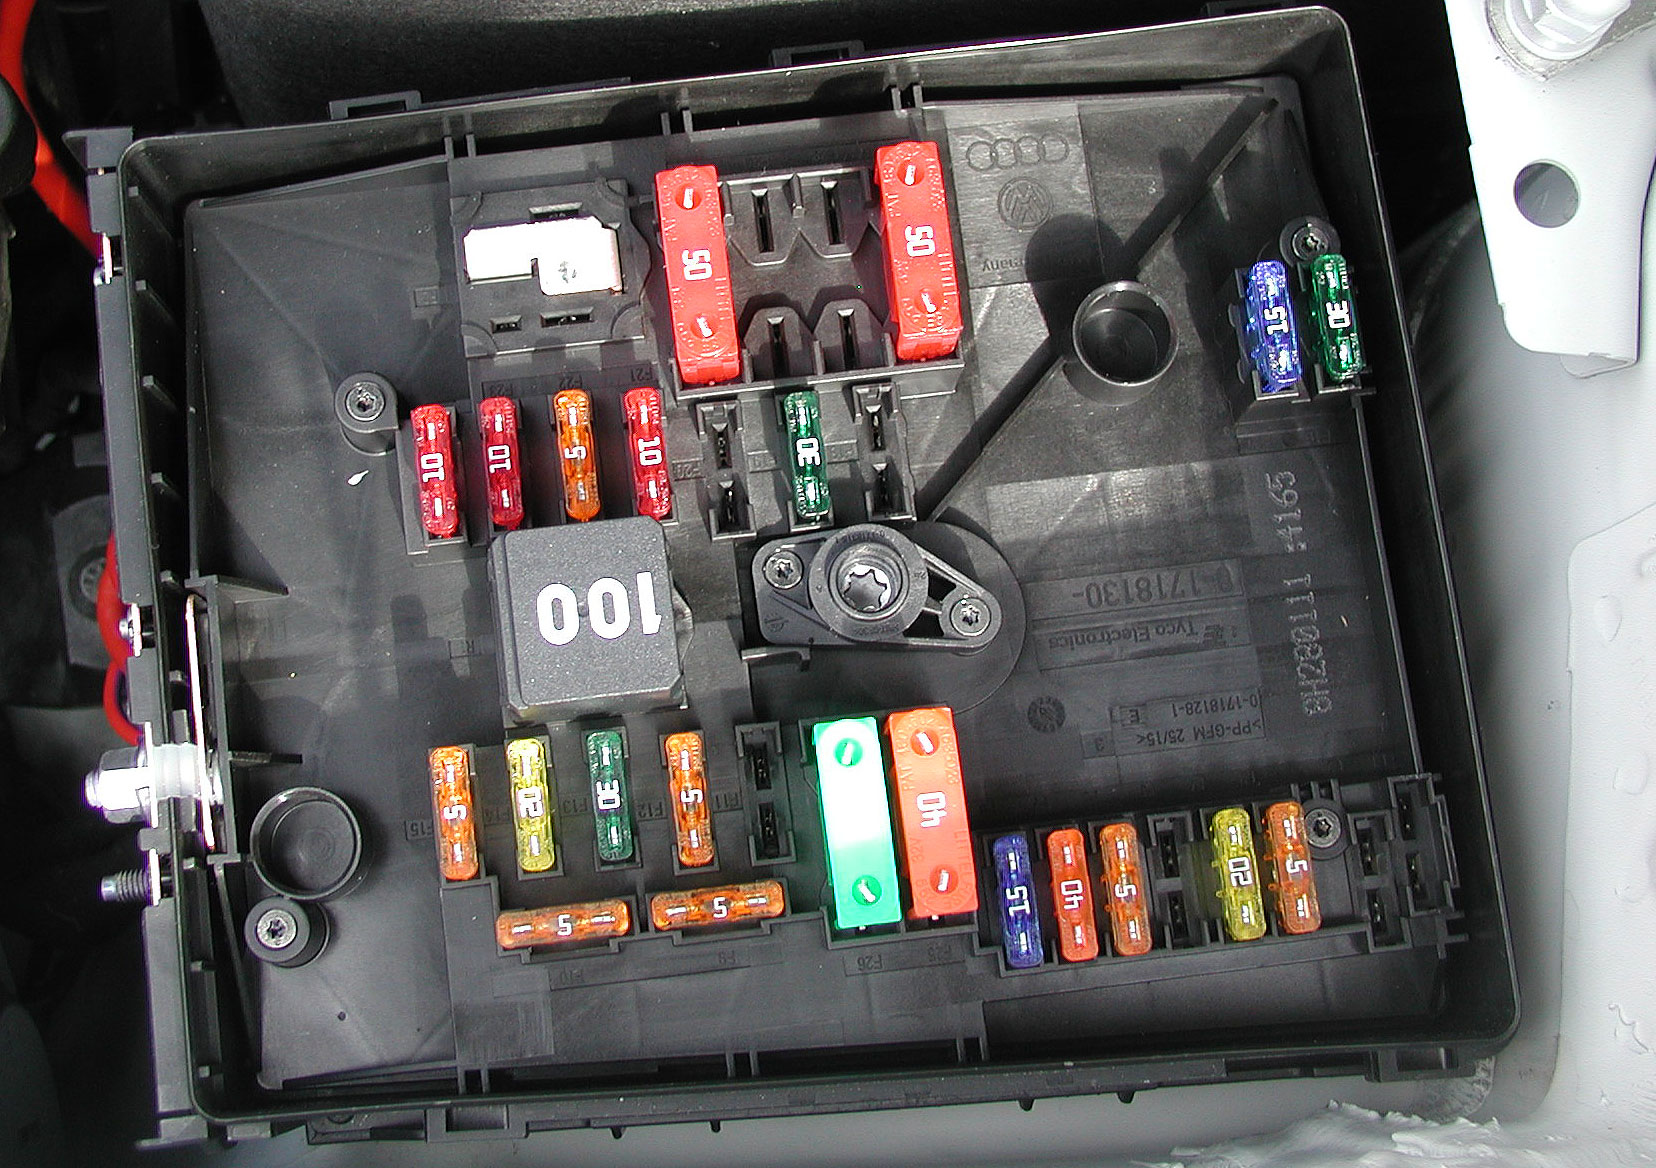 engineFuses2 golf mkv 1 9 tdi rcd 310 battery drain the volkswagen club of 2011 golf tdi fuse box diagram at soozxer.org